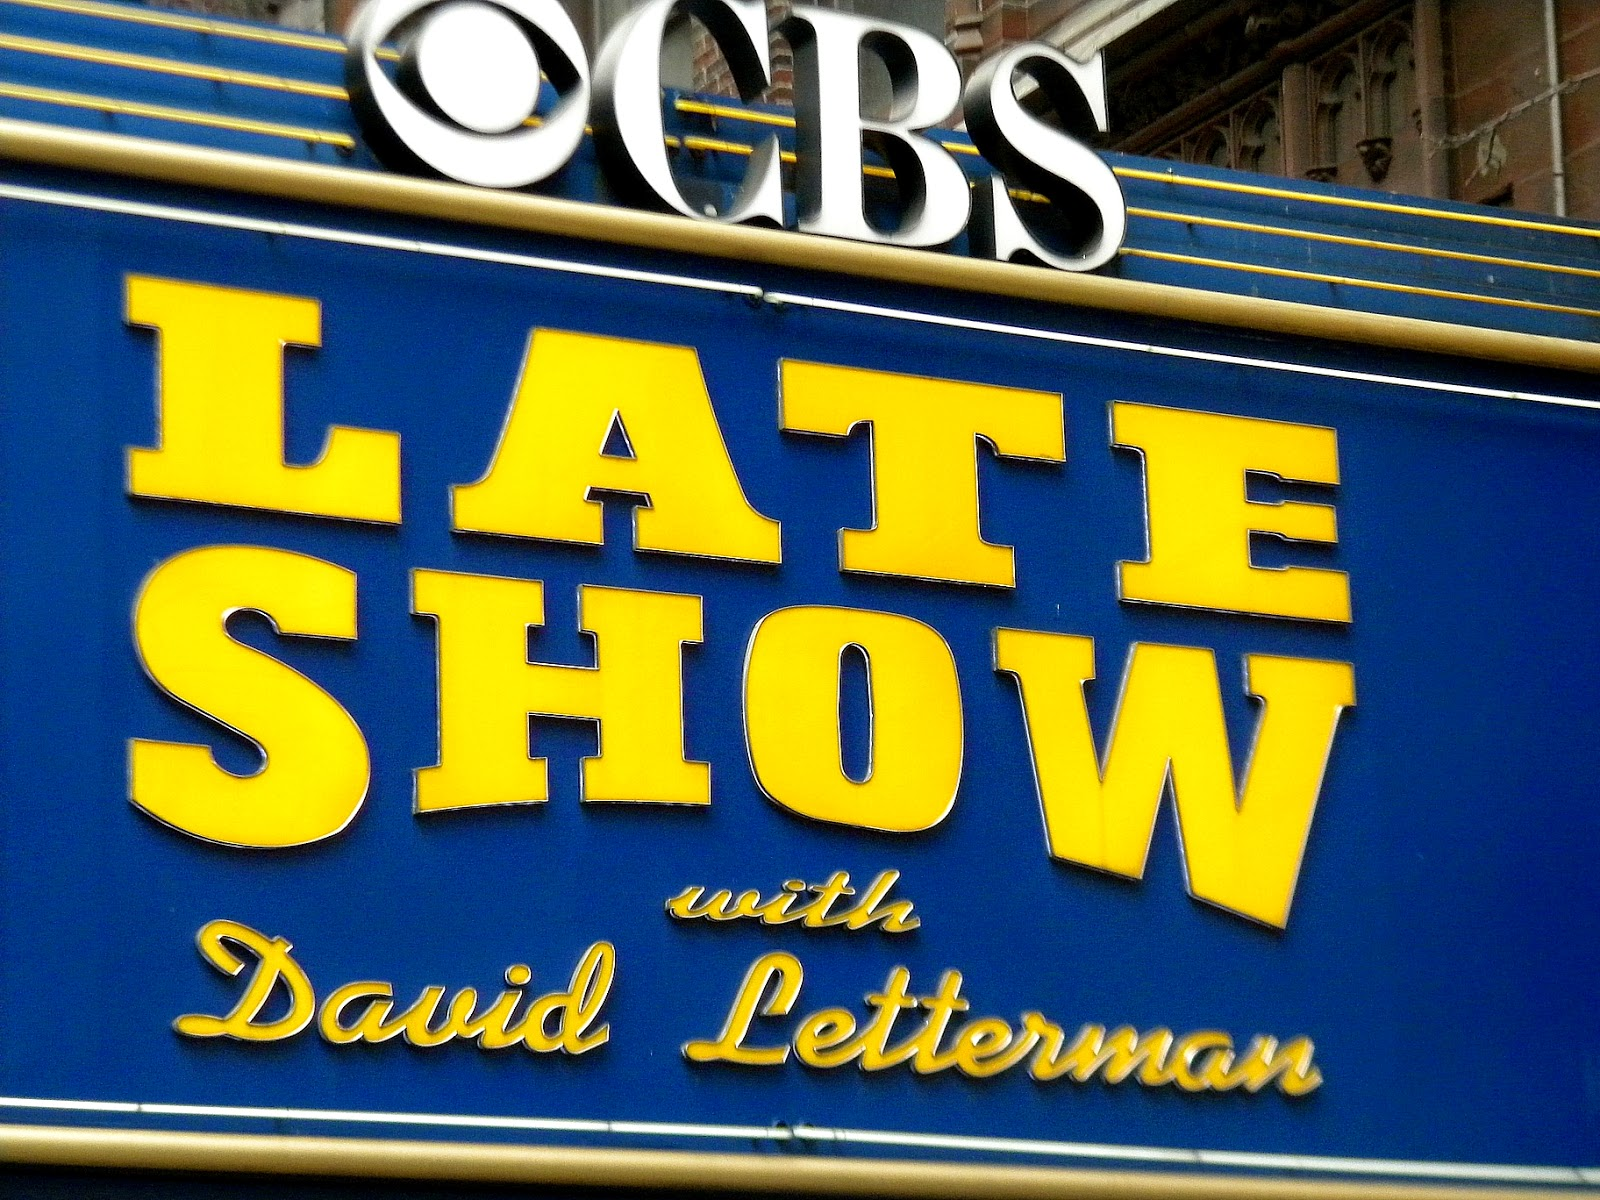 Late Night David Letterman Ed Sullivan Theater Clip Art +Late Show.